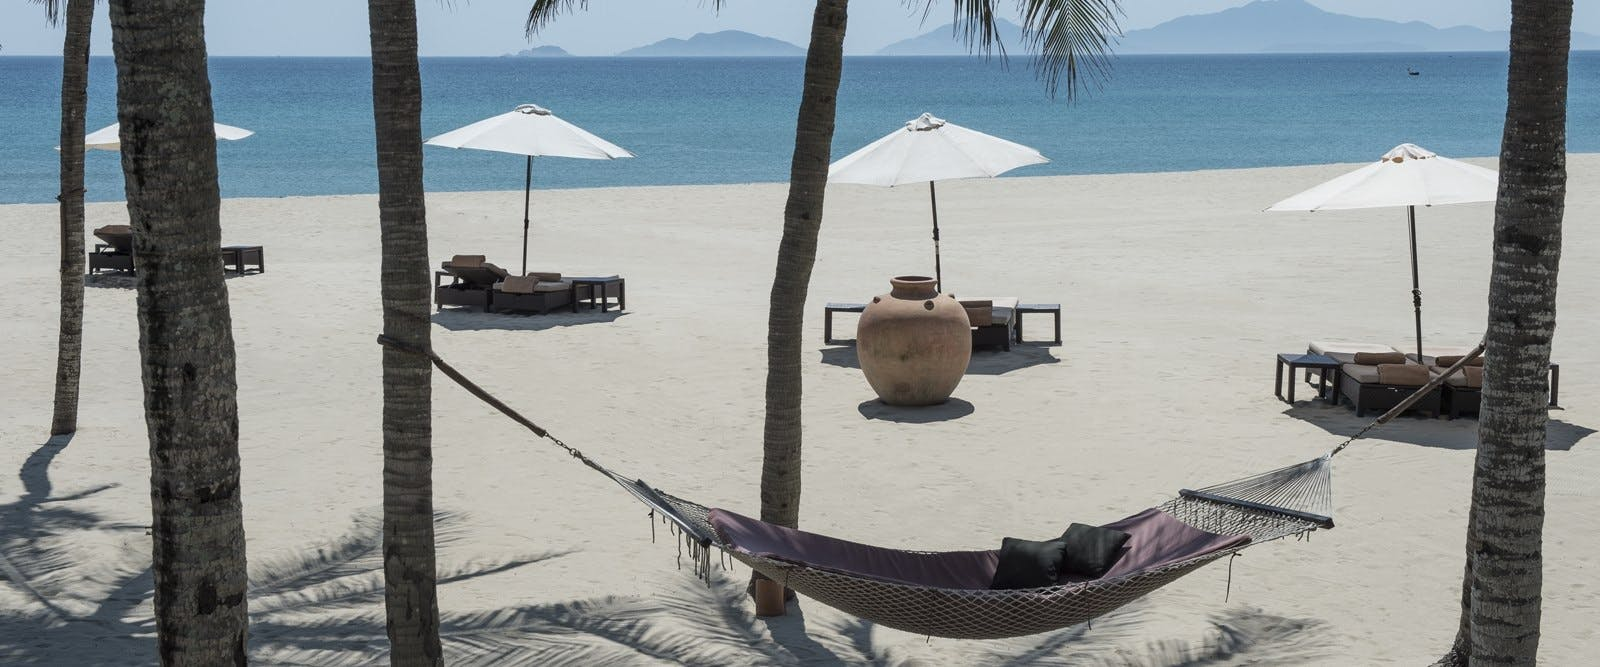 The beach at Four Seasons Resort The Nam Hai, Hoi An, Vietnam